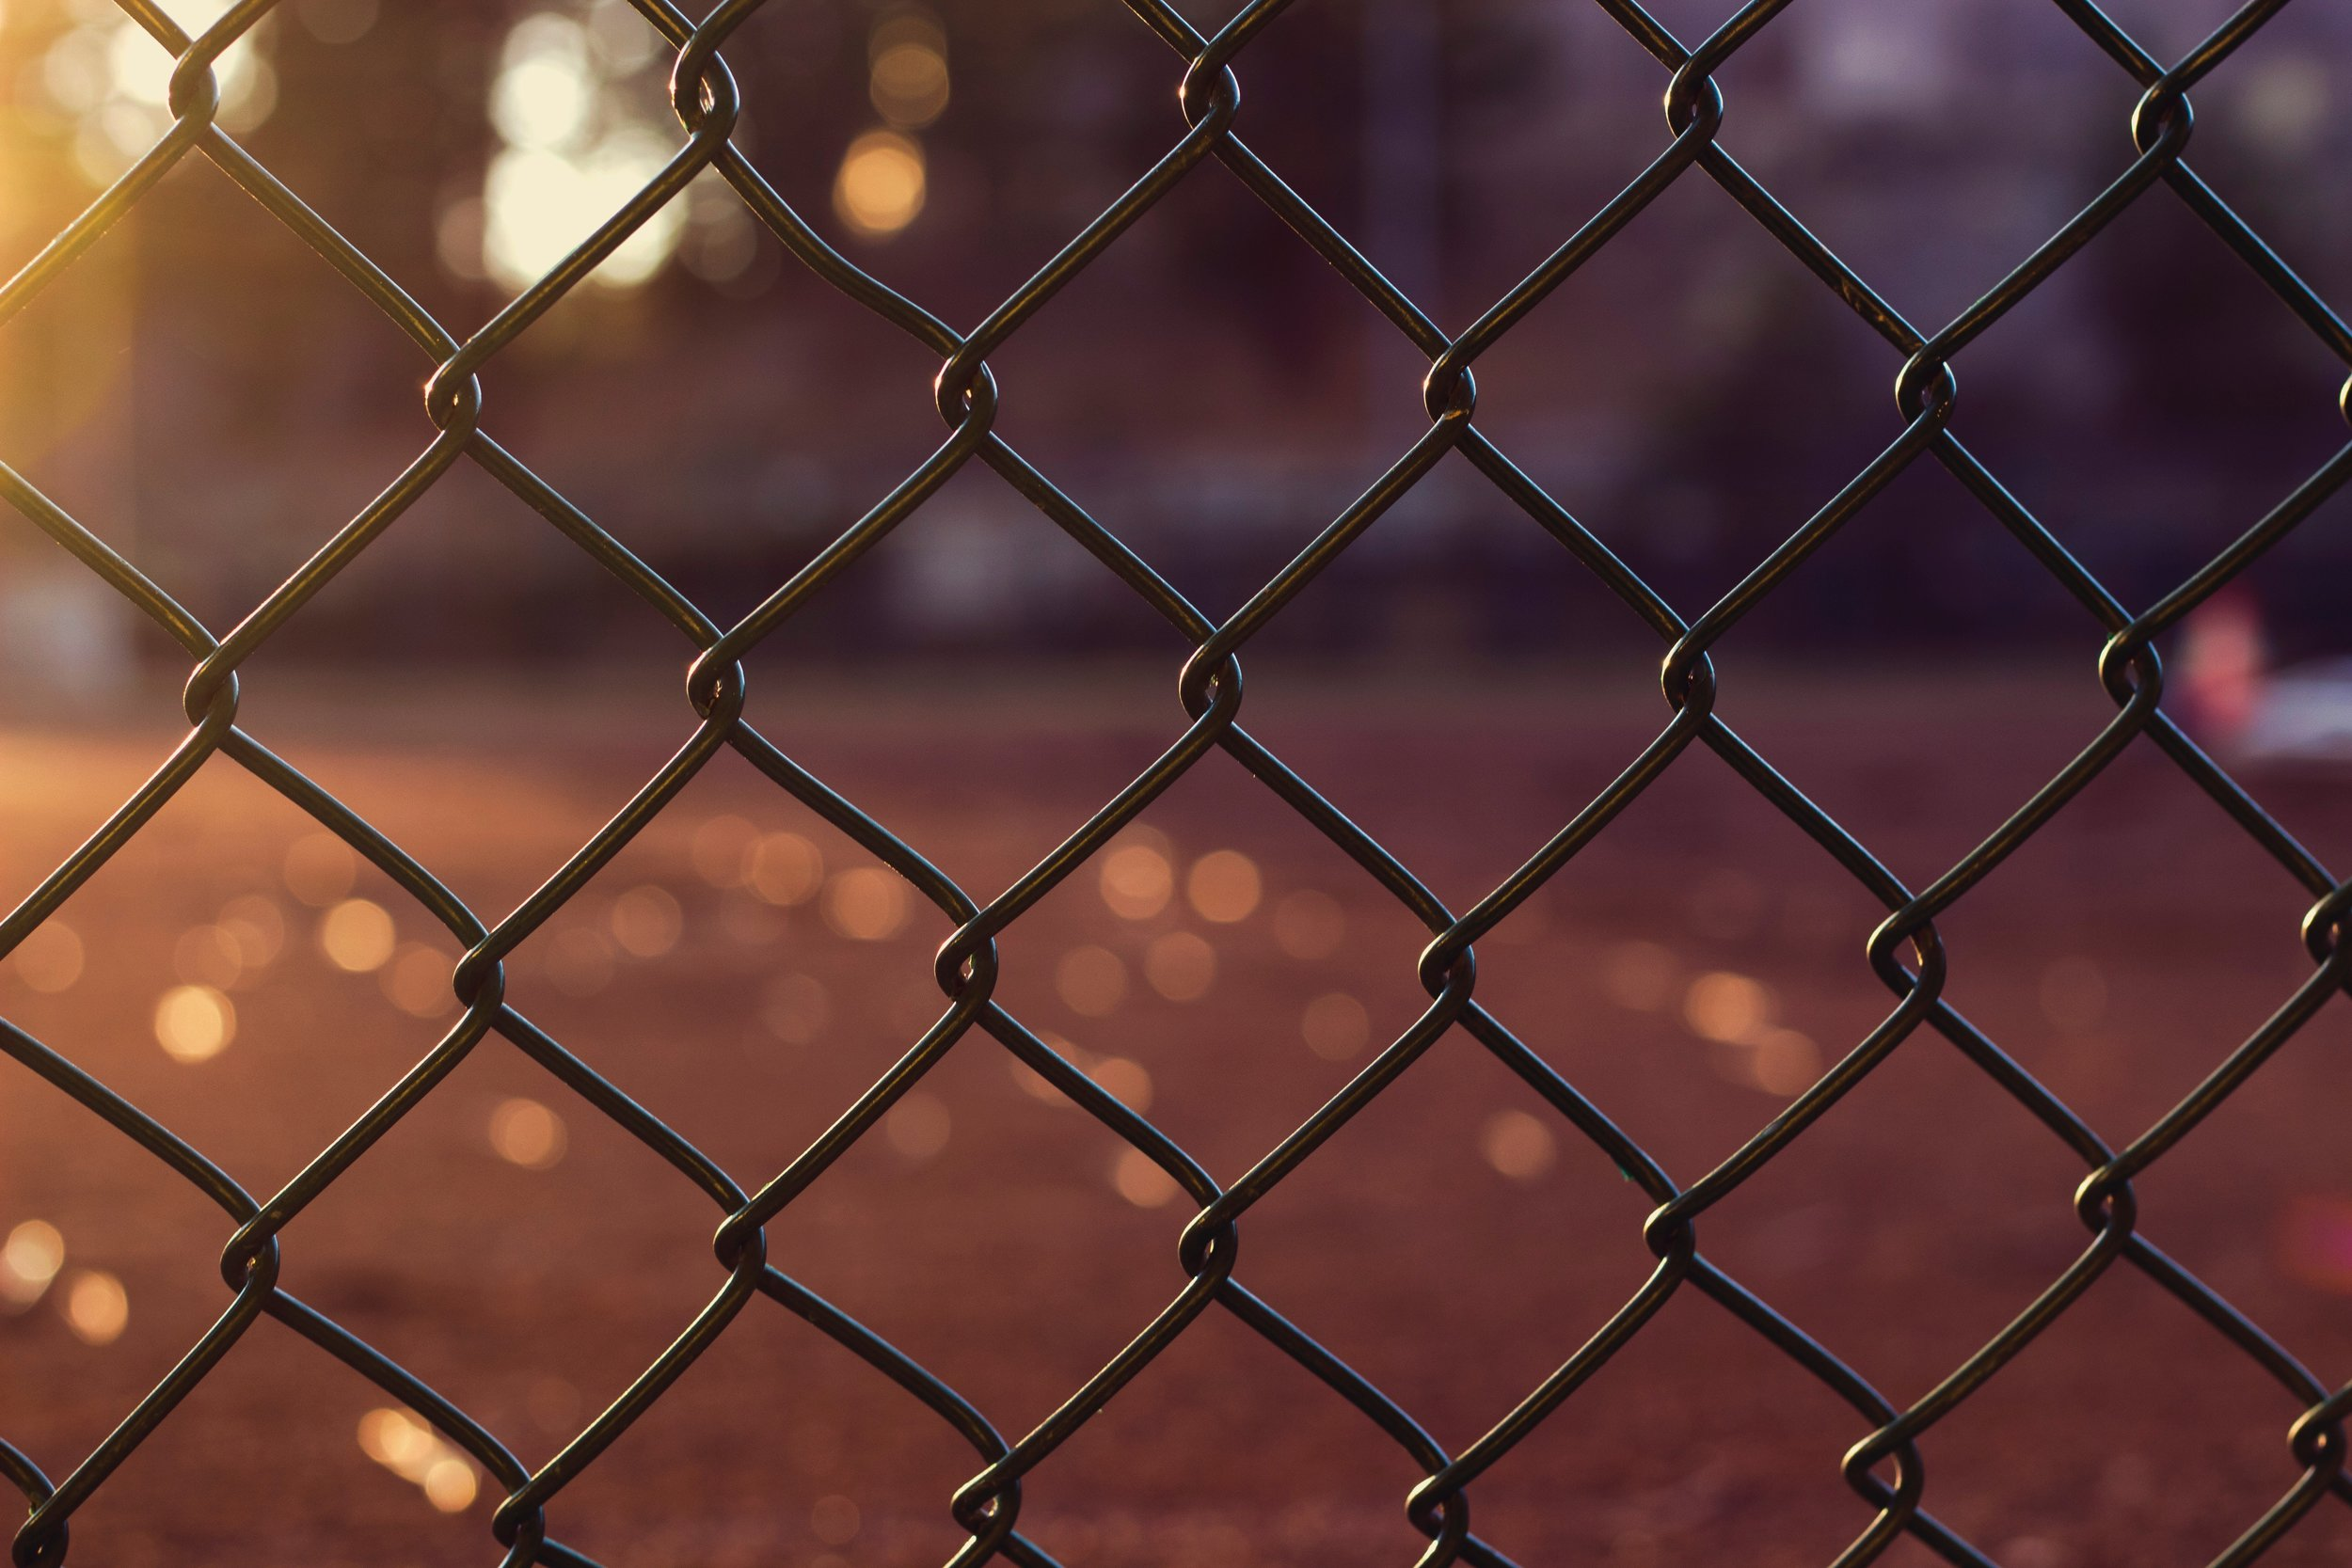 chain-link-fence-close-up-fence-897651.jpg